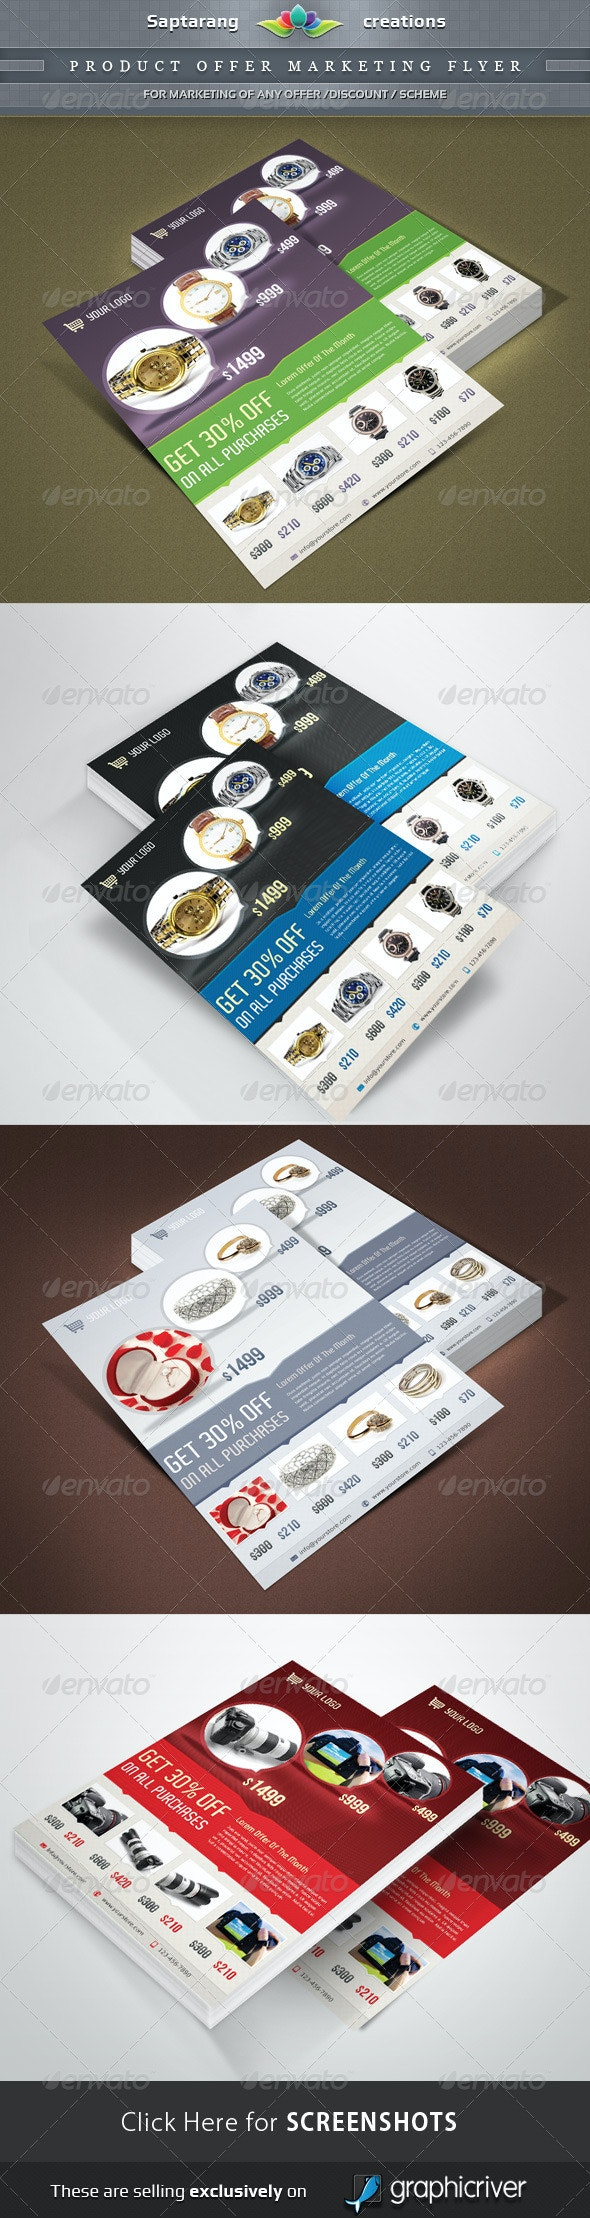 Product Offer marketing Flyer - Commerce Flyers